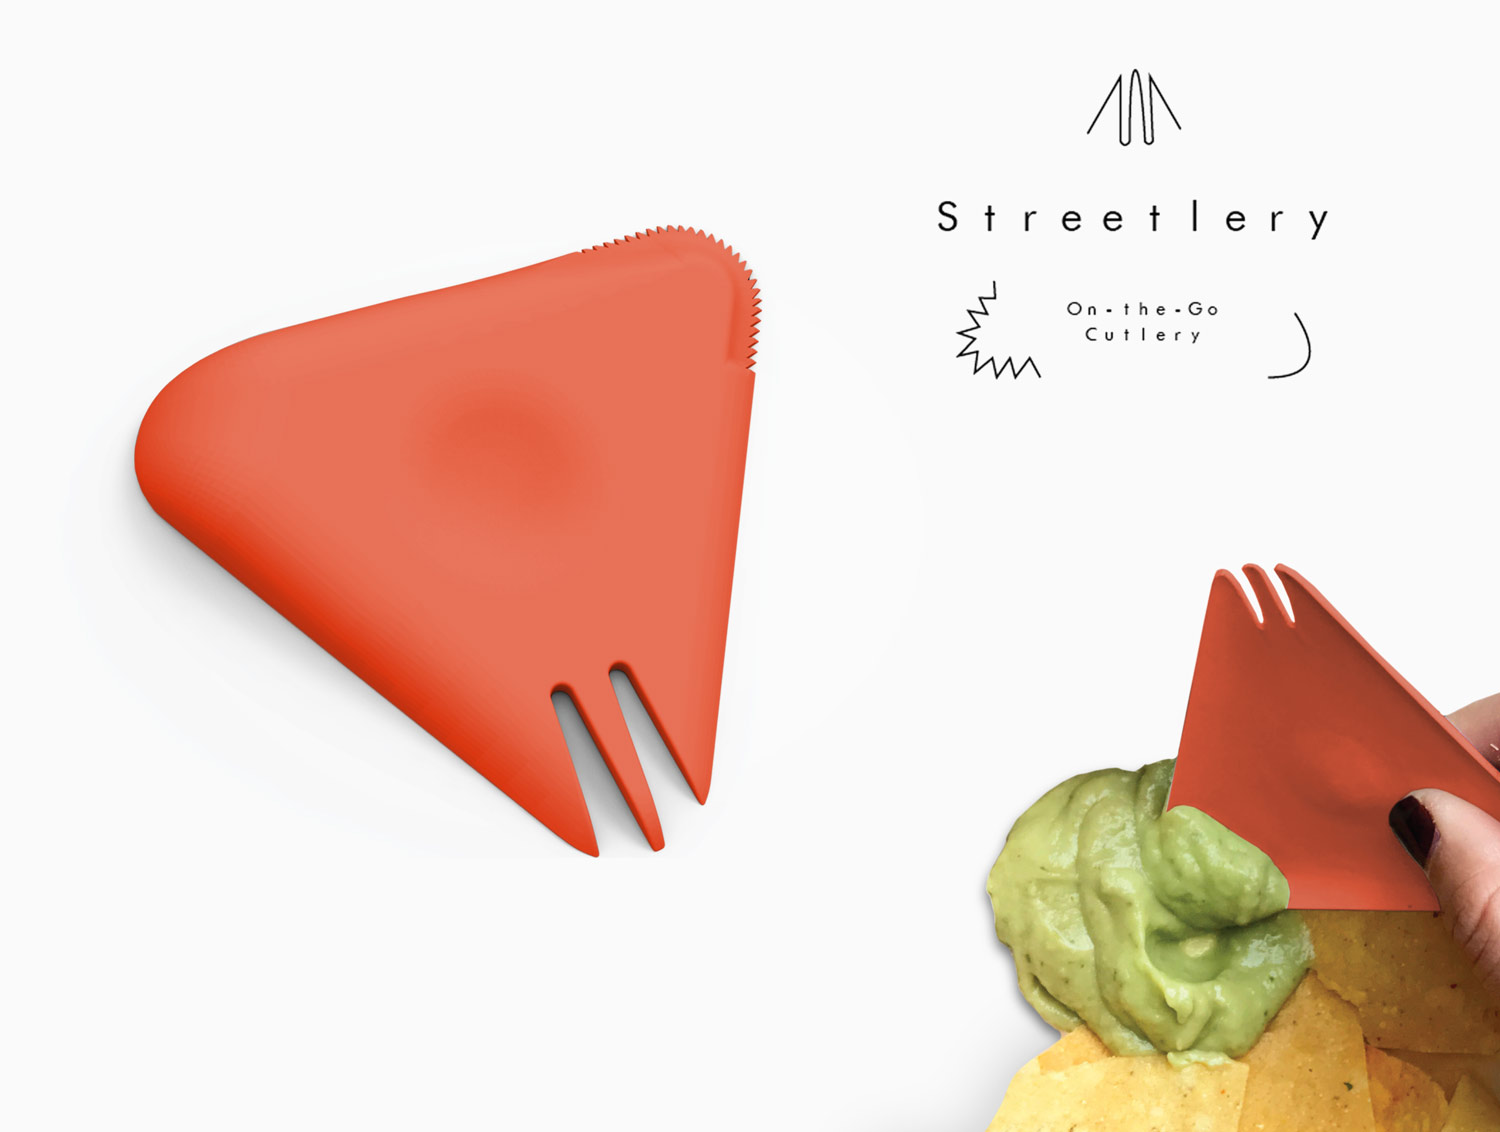 Project: Streetlery Pratt 2016   Student: Zoe Berman    Class: Design in Context Industrial Design Senior Studio  Zoe Berman observed the amount of waste created by the growing trend of food trucks. Honing in on Cutlery, she developed a 3-in1 product that uses 50% less material than a traditional plastic fork spoon and knife given away with most takeaway meals. She went further to find a bioderadable plastic substitute four the product lessening its enviornmental foot print even further.